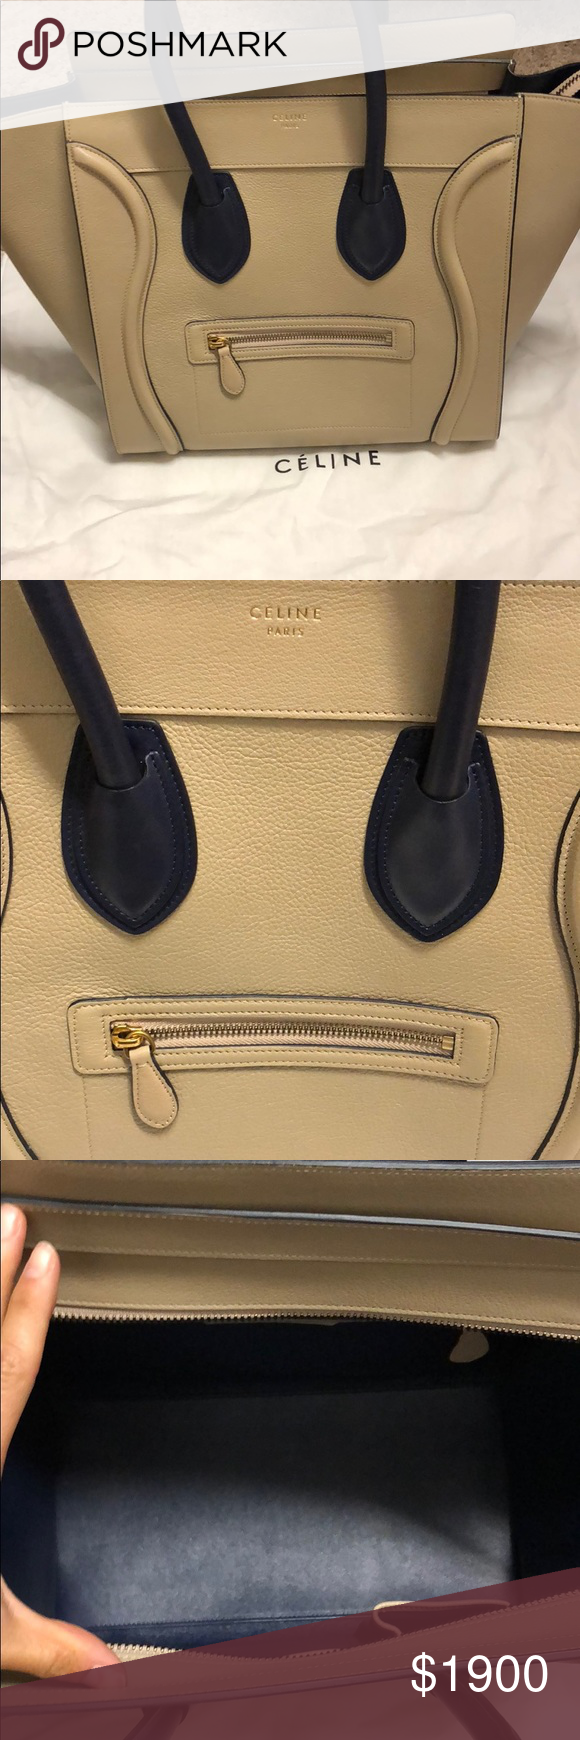 8741e6d4f7dd Céline mini luggage brand new Bran new never worn. Tags attached. Final  price Celine Bags Shoulder Bags